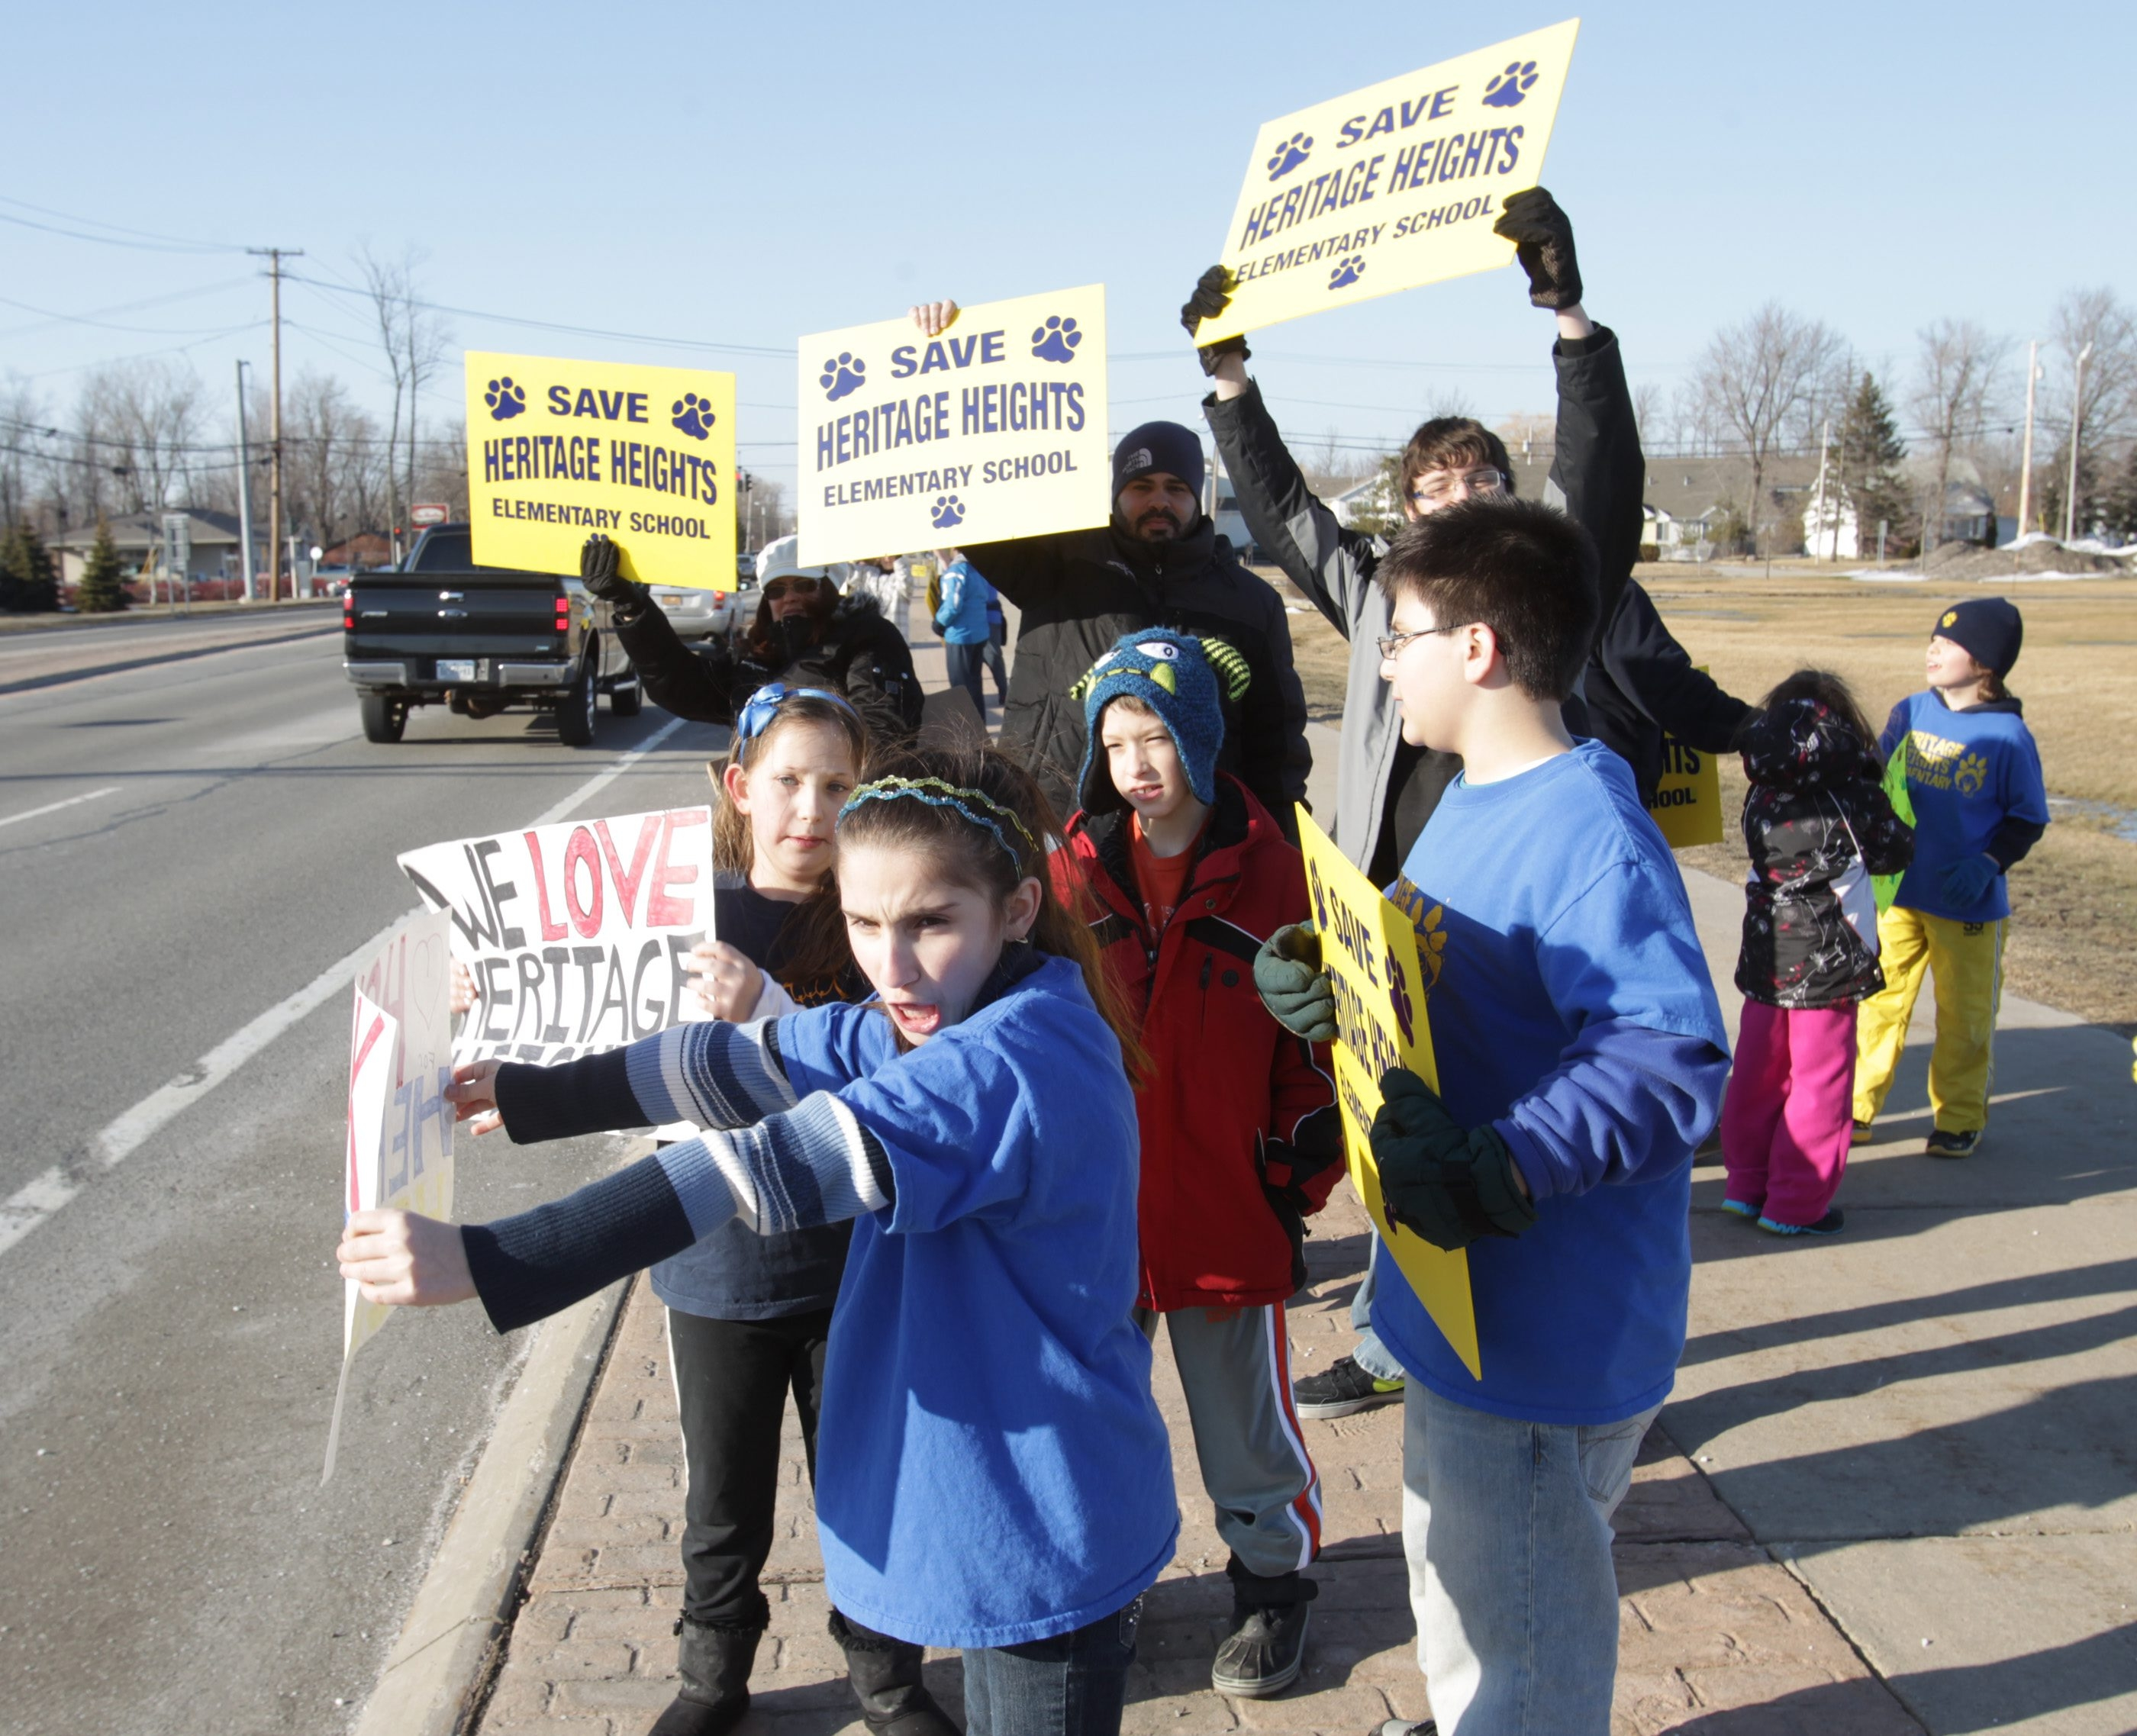 Some parents and students rallied back in March before the vote on whether to close Heritage Heights Elementary School in the Sweet Home school district.